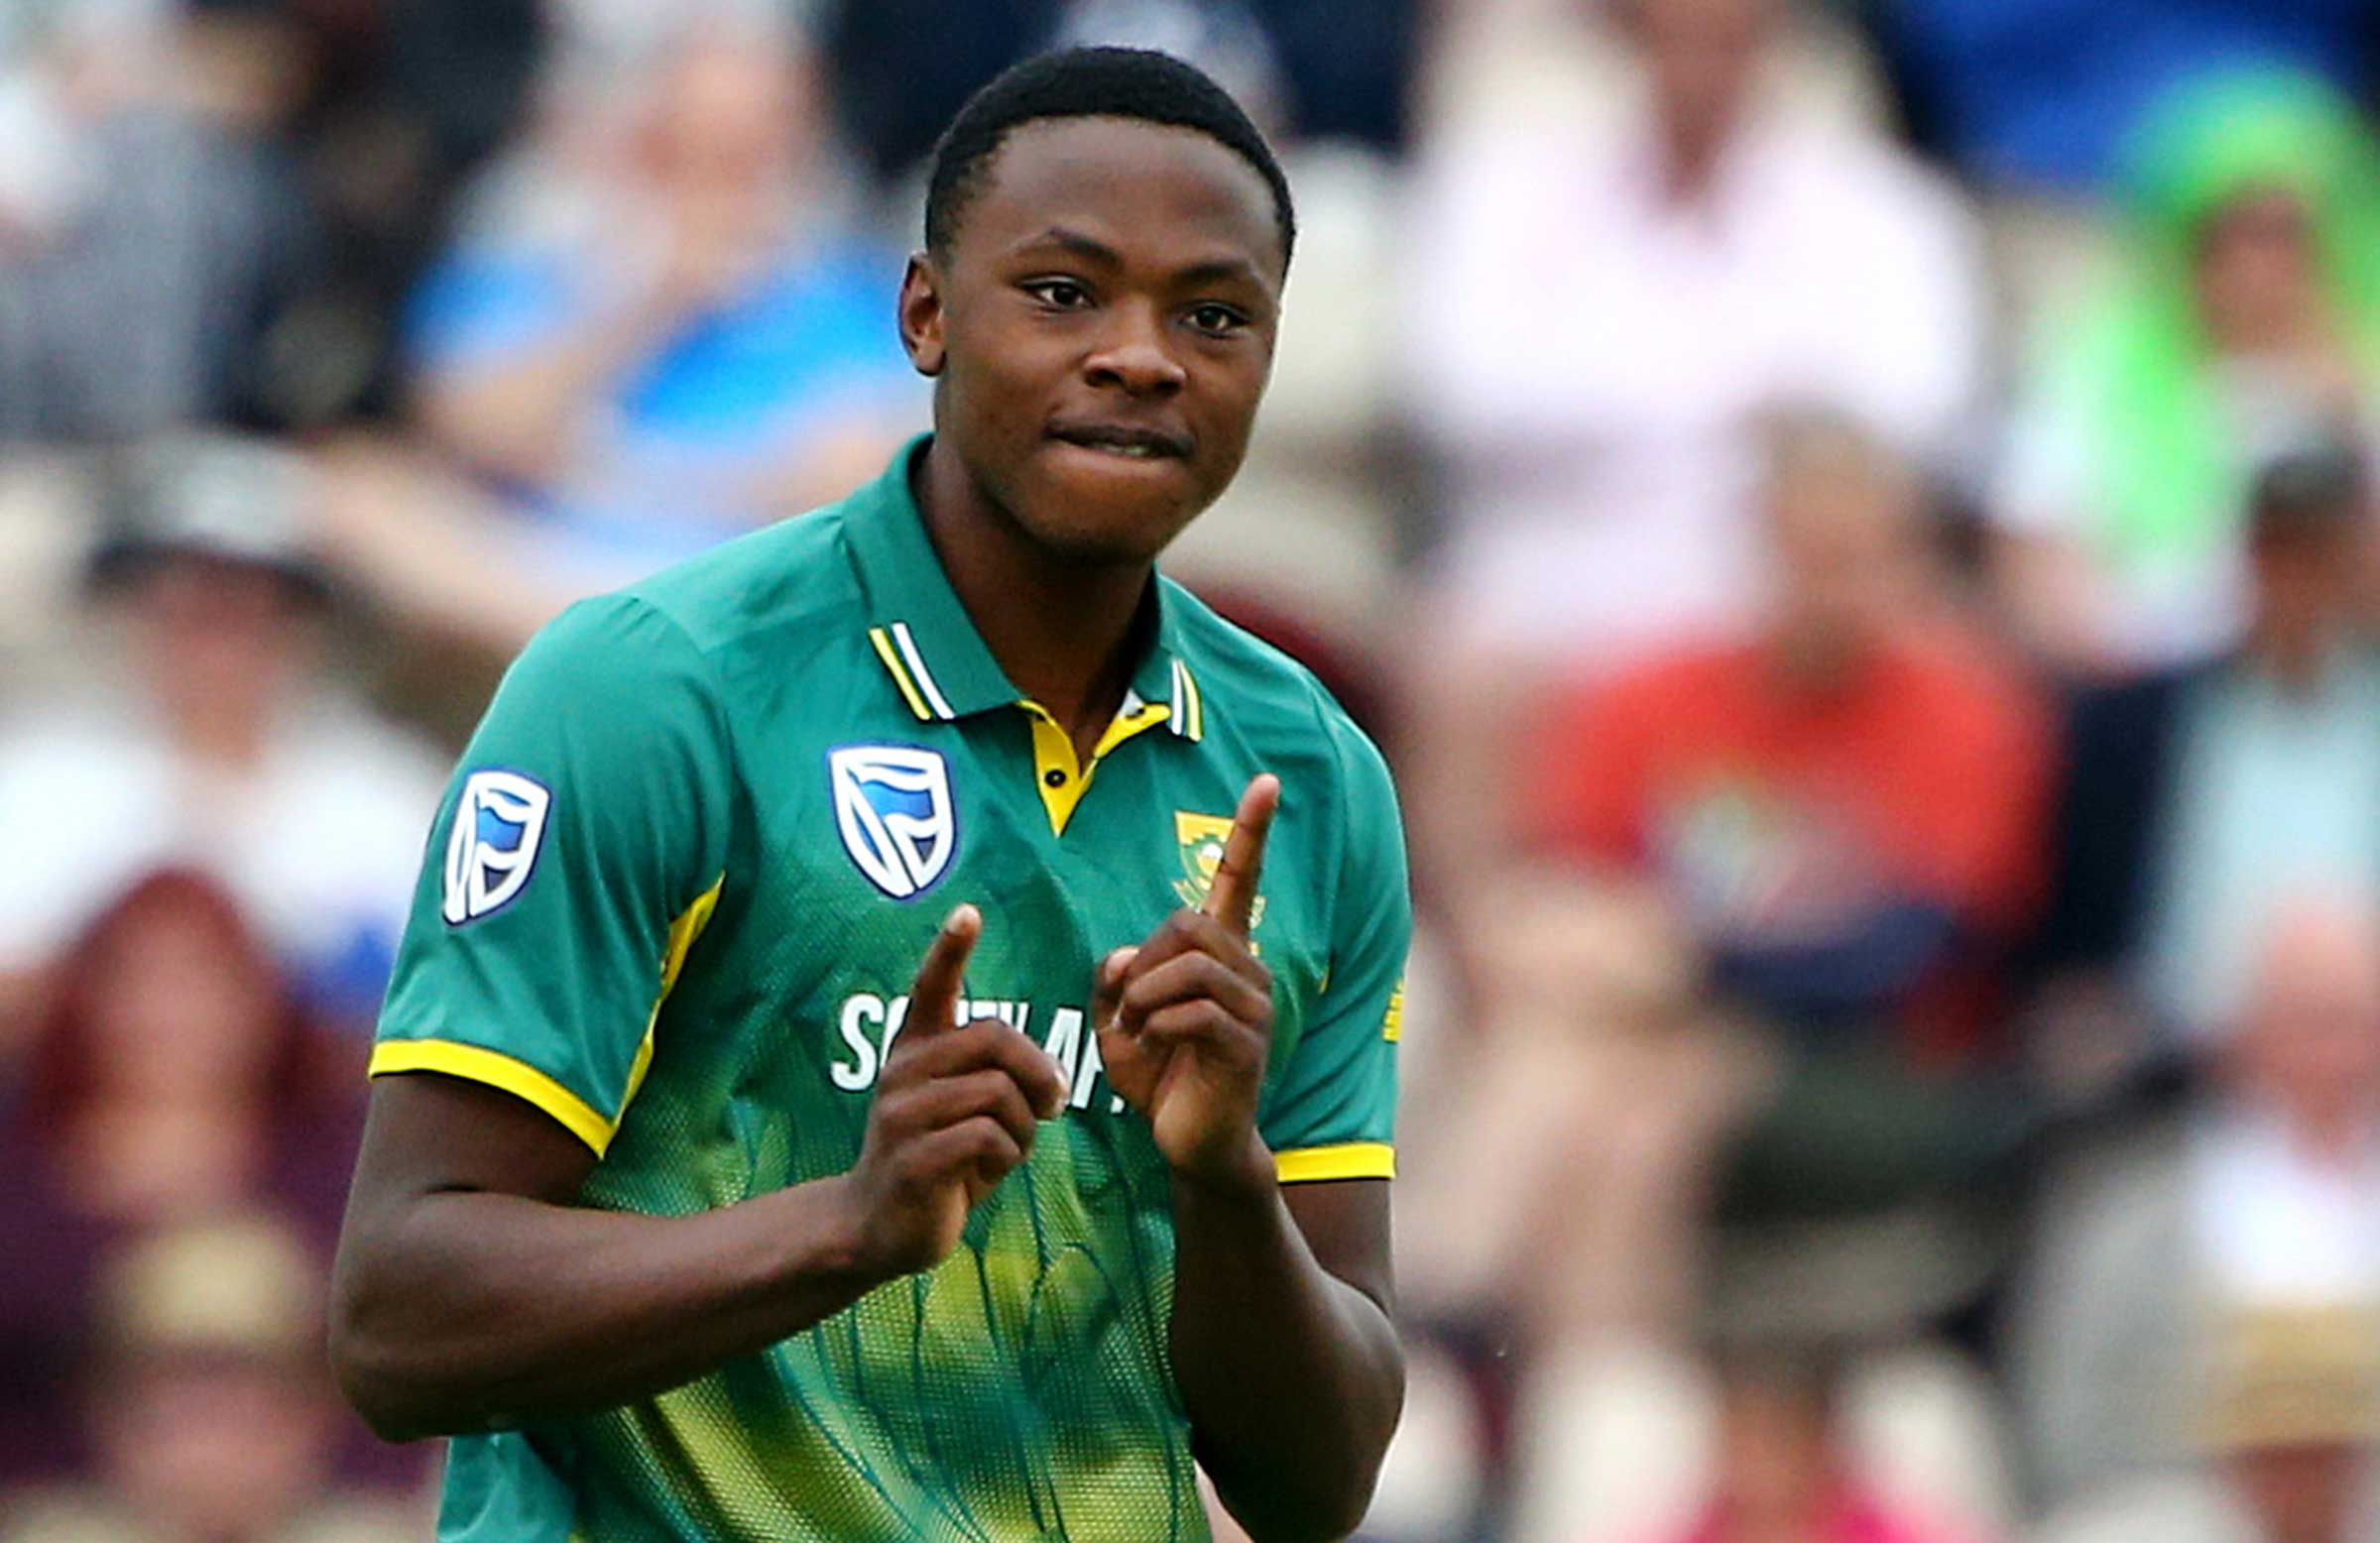 Rabada was fined 15 percent of his match fees. (AFP)